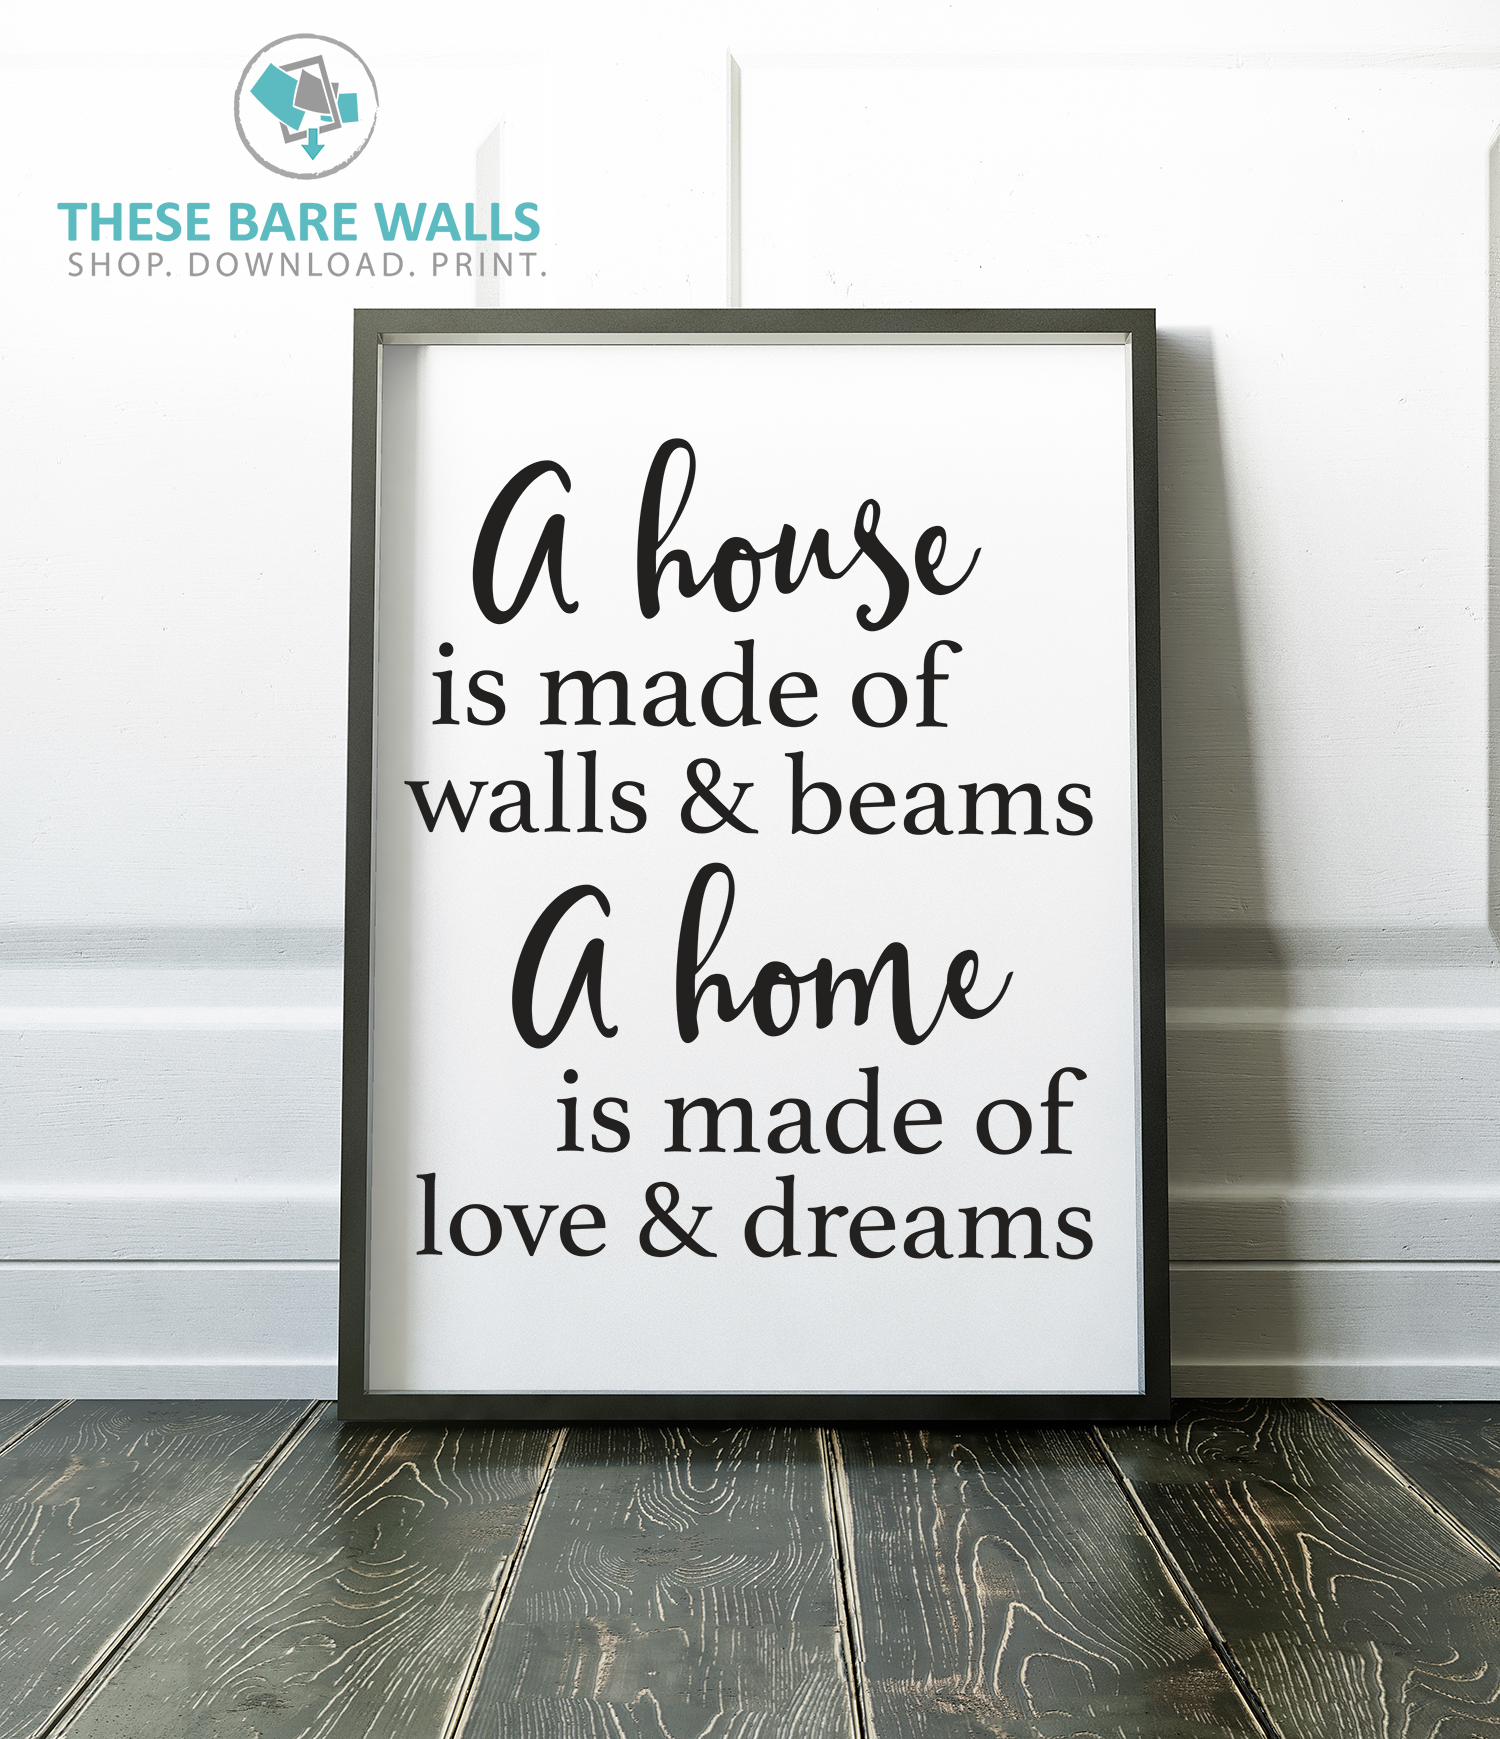 A house is made of walls u beams a home is made of walls u dreams